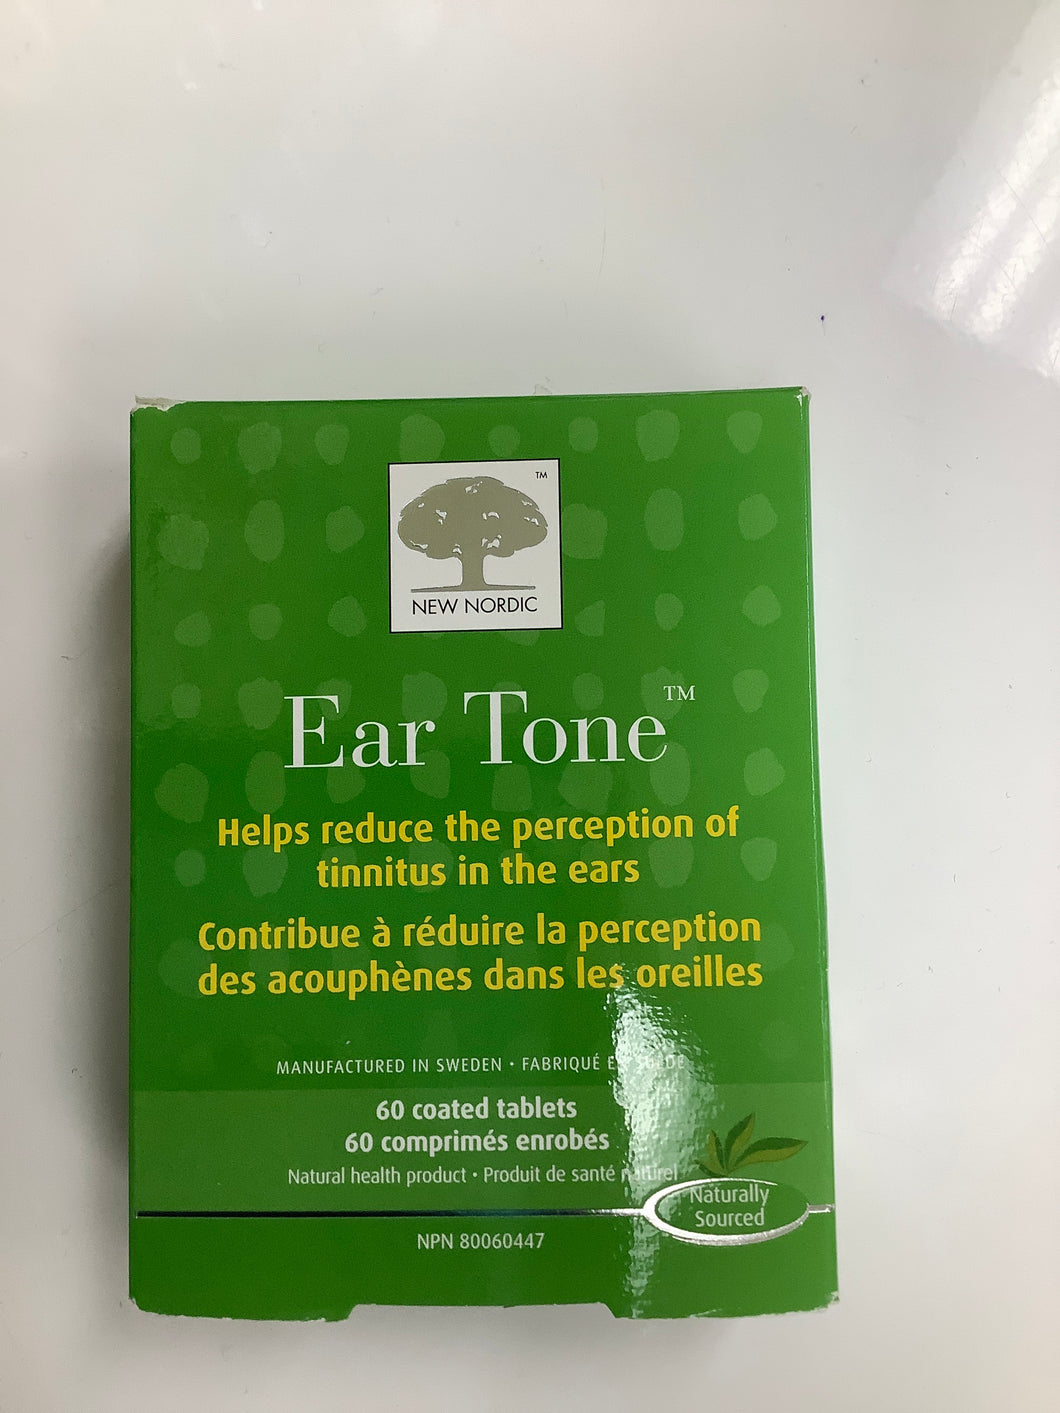 New Nordic Ear Tonic